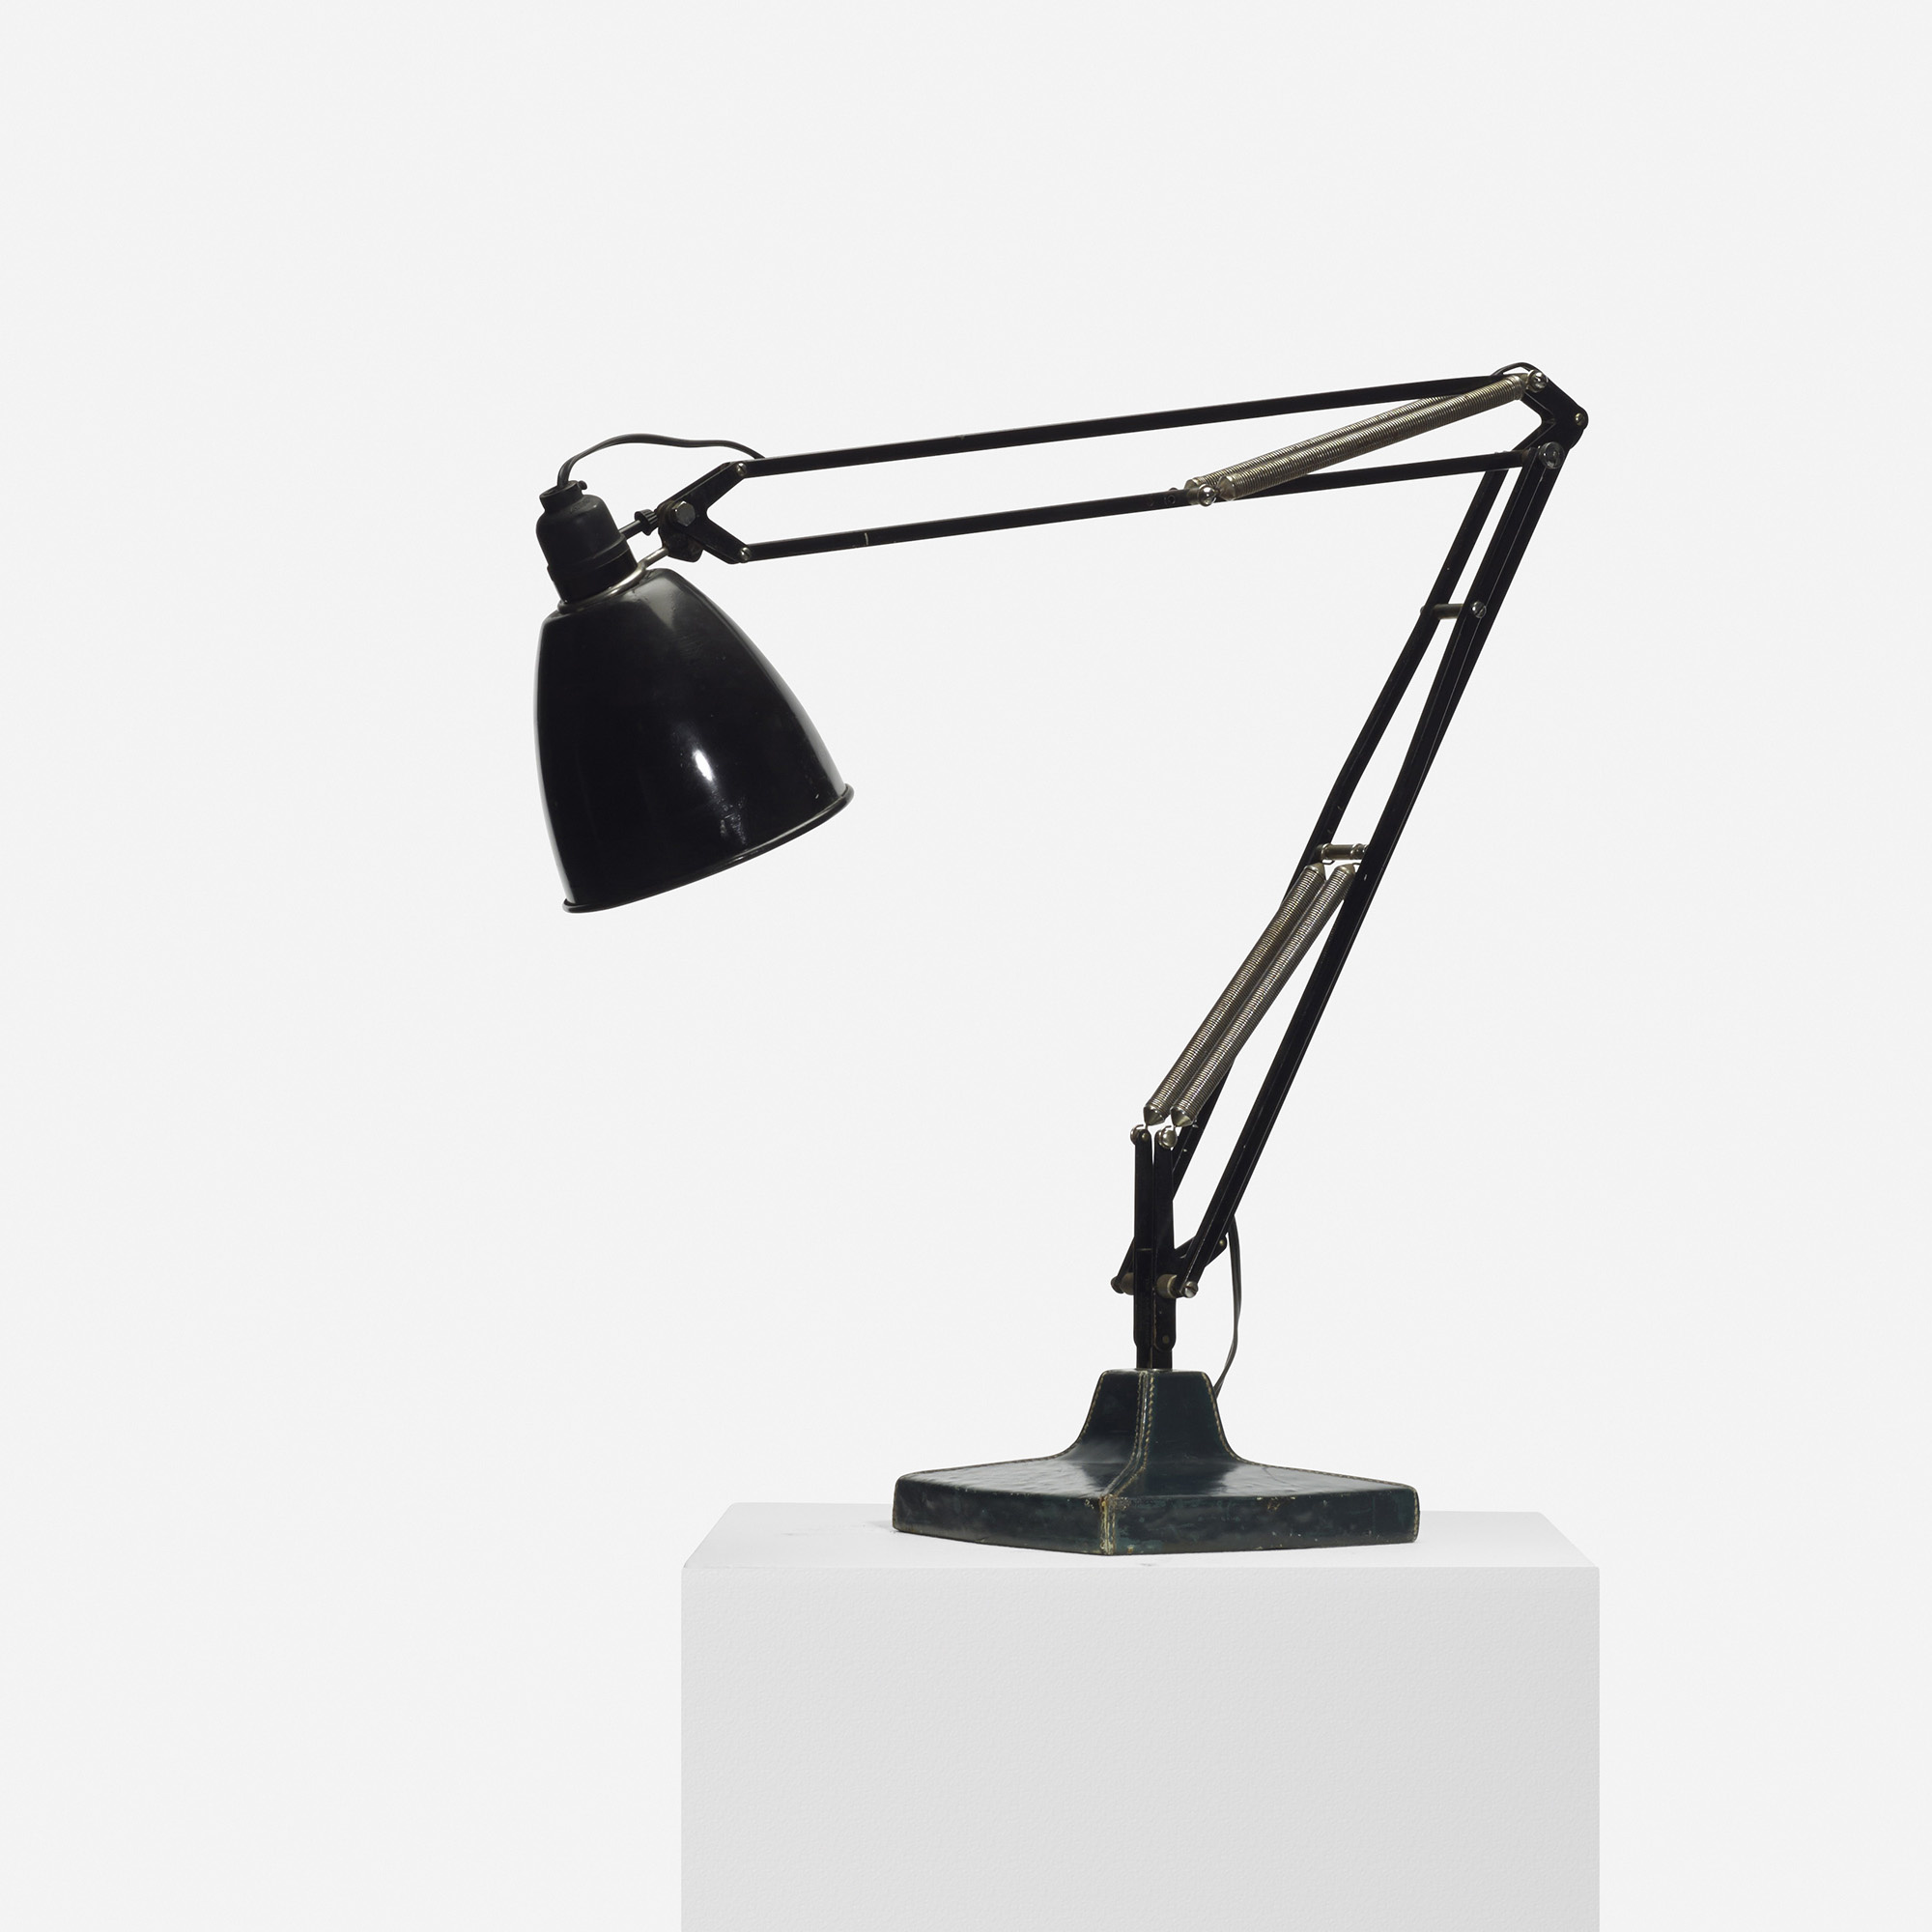 online johnlewis grey at elephant lamp buyanglepoise desk john main pdp com brass original anglepoise rsp lewis